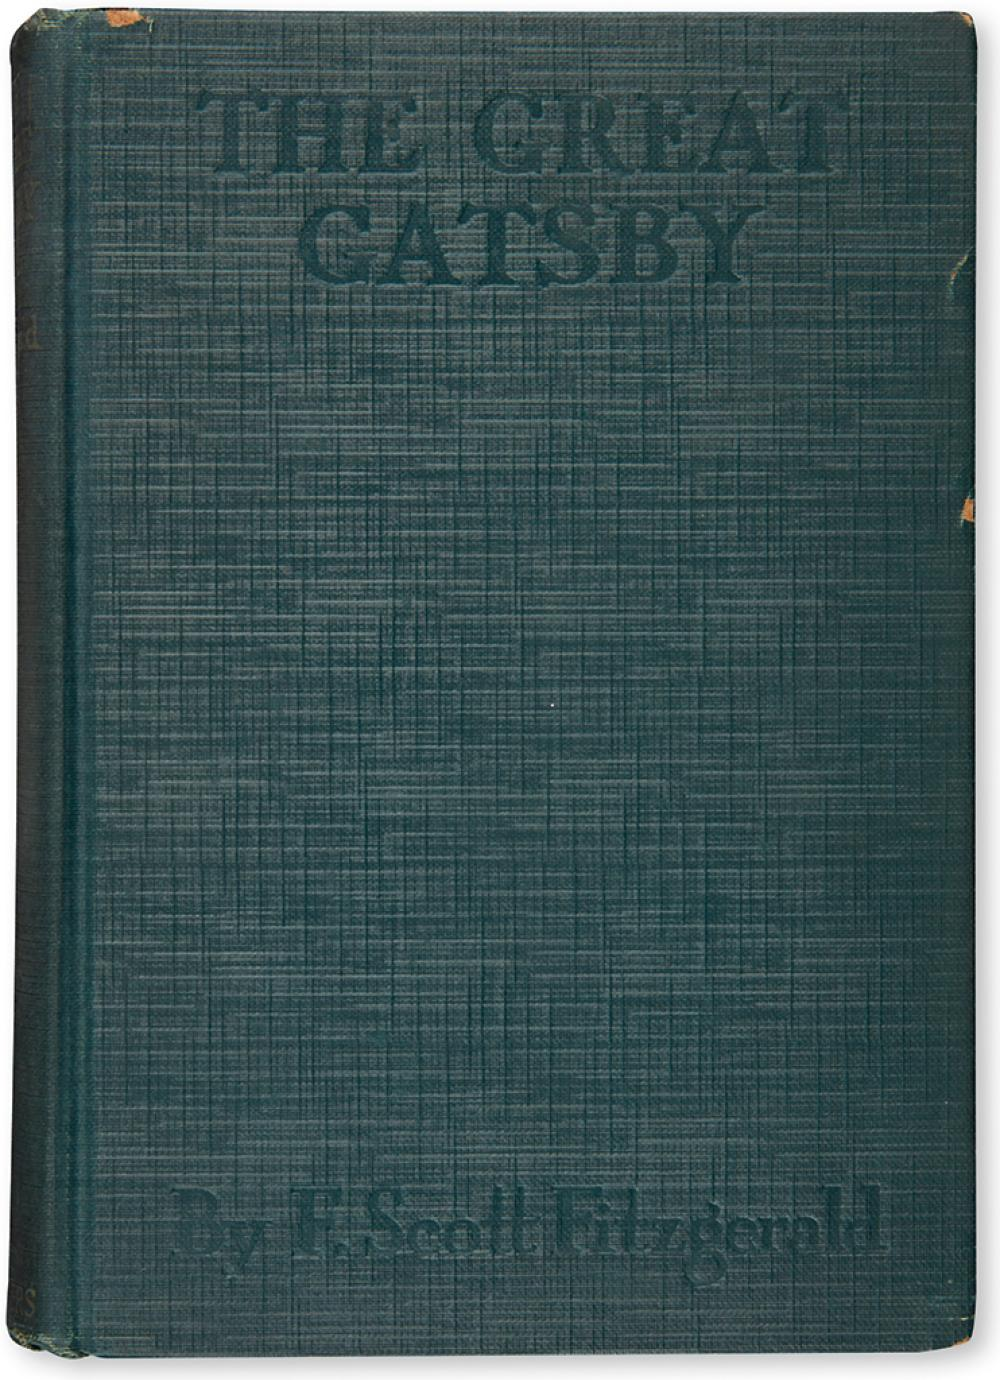 FITZGERALD, F.SCOTT. The Great Gatsby.